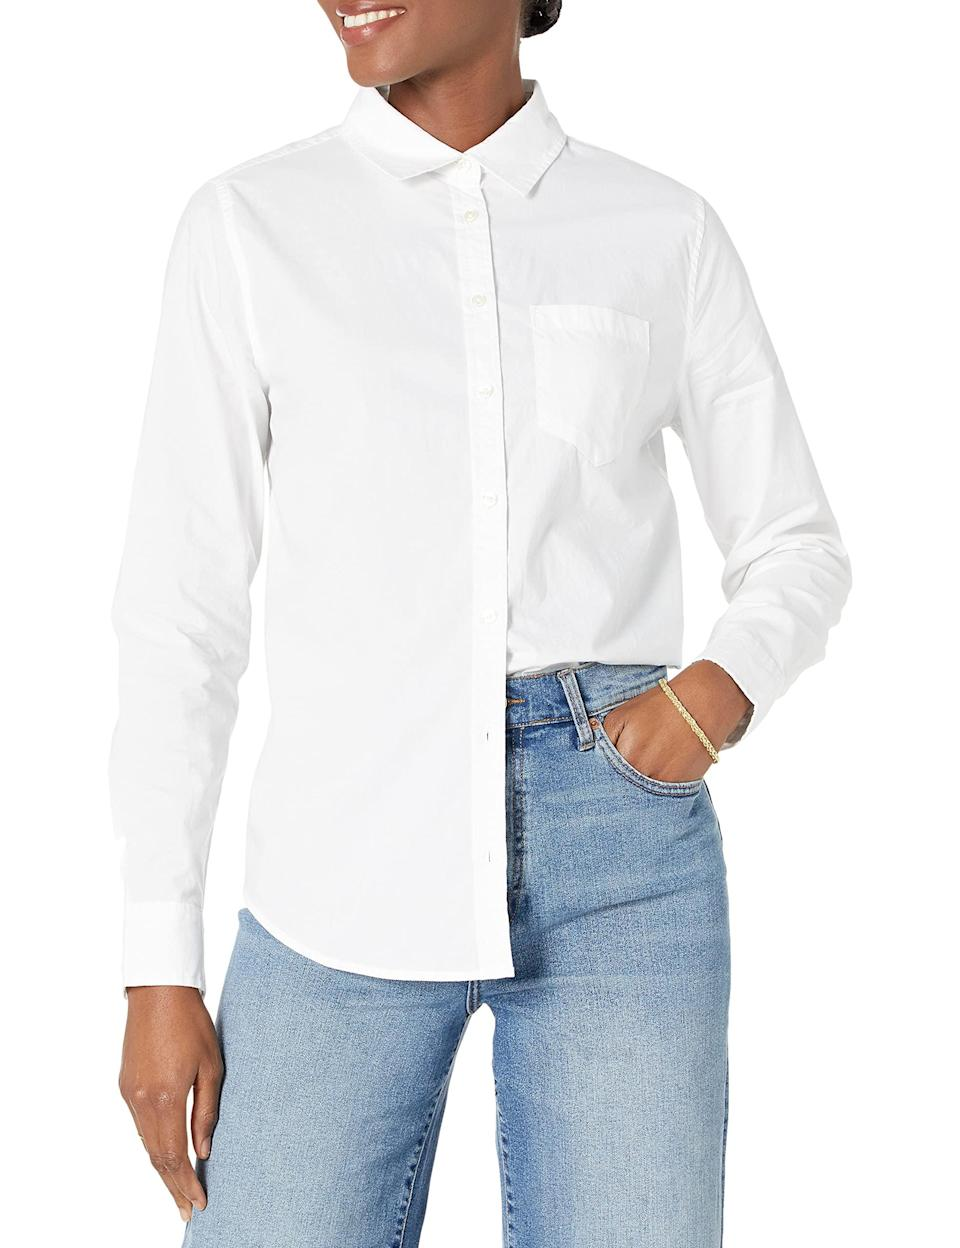 """<h2>Amazon Essentials Classic-Fit Button-Down Poplin Shirt</h2><br><strong>Best Amazon White Button-Down</strong><br>Over 6,000 Amazon reviewers rave about this very affordable button-down's classic tailoring, comfortable fit, and wrinkle resistance.<br><br><strong>The Hype:</strong> 4.3 out of 5 stars and 6,219 reviews on Amazon<br><br><strong>What They're Saying: </strong>""""I have both the Amazon Essentials classic fit button-down Oxford and the Amazon Essentials classic fit button-down poplin shirts. I absolutely love both. This shirt, the poplin, is lighter weight and wrinkles much less straight from the dryer. Both shirts have a men's style fit, with no darts to nip in the waist. The length is just below the bottom. The cuff is crisp and has a double button to make turning the cuff once or twice secure and tidy. This style is best for layering, as it is light and cool. The black gingham is pure, classic preppy. I rarely buy items before they go on sale, but I wanted this pattern and would pay full price again. Perfect.""""<br><br><strong>Amazon Essentials</strong> Classic-Fit Long Sleeve Button Down Poplin Shirt, $, available at <a href=""""https://amzn.to/2W5i034"""" rel=""""nofollow noopener"""" target=""""_blank"""" data-ylk=""""slk:Amazon"""" class=""""link rapid-noclick-resp"""">Amazon</a>"""